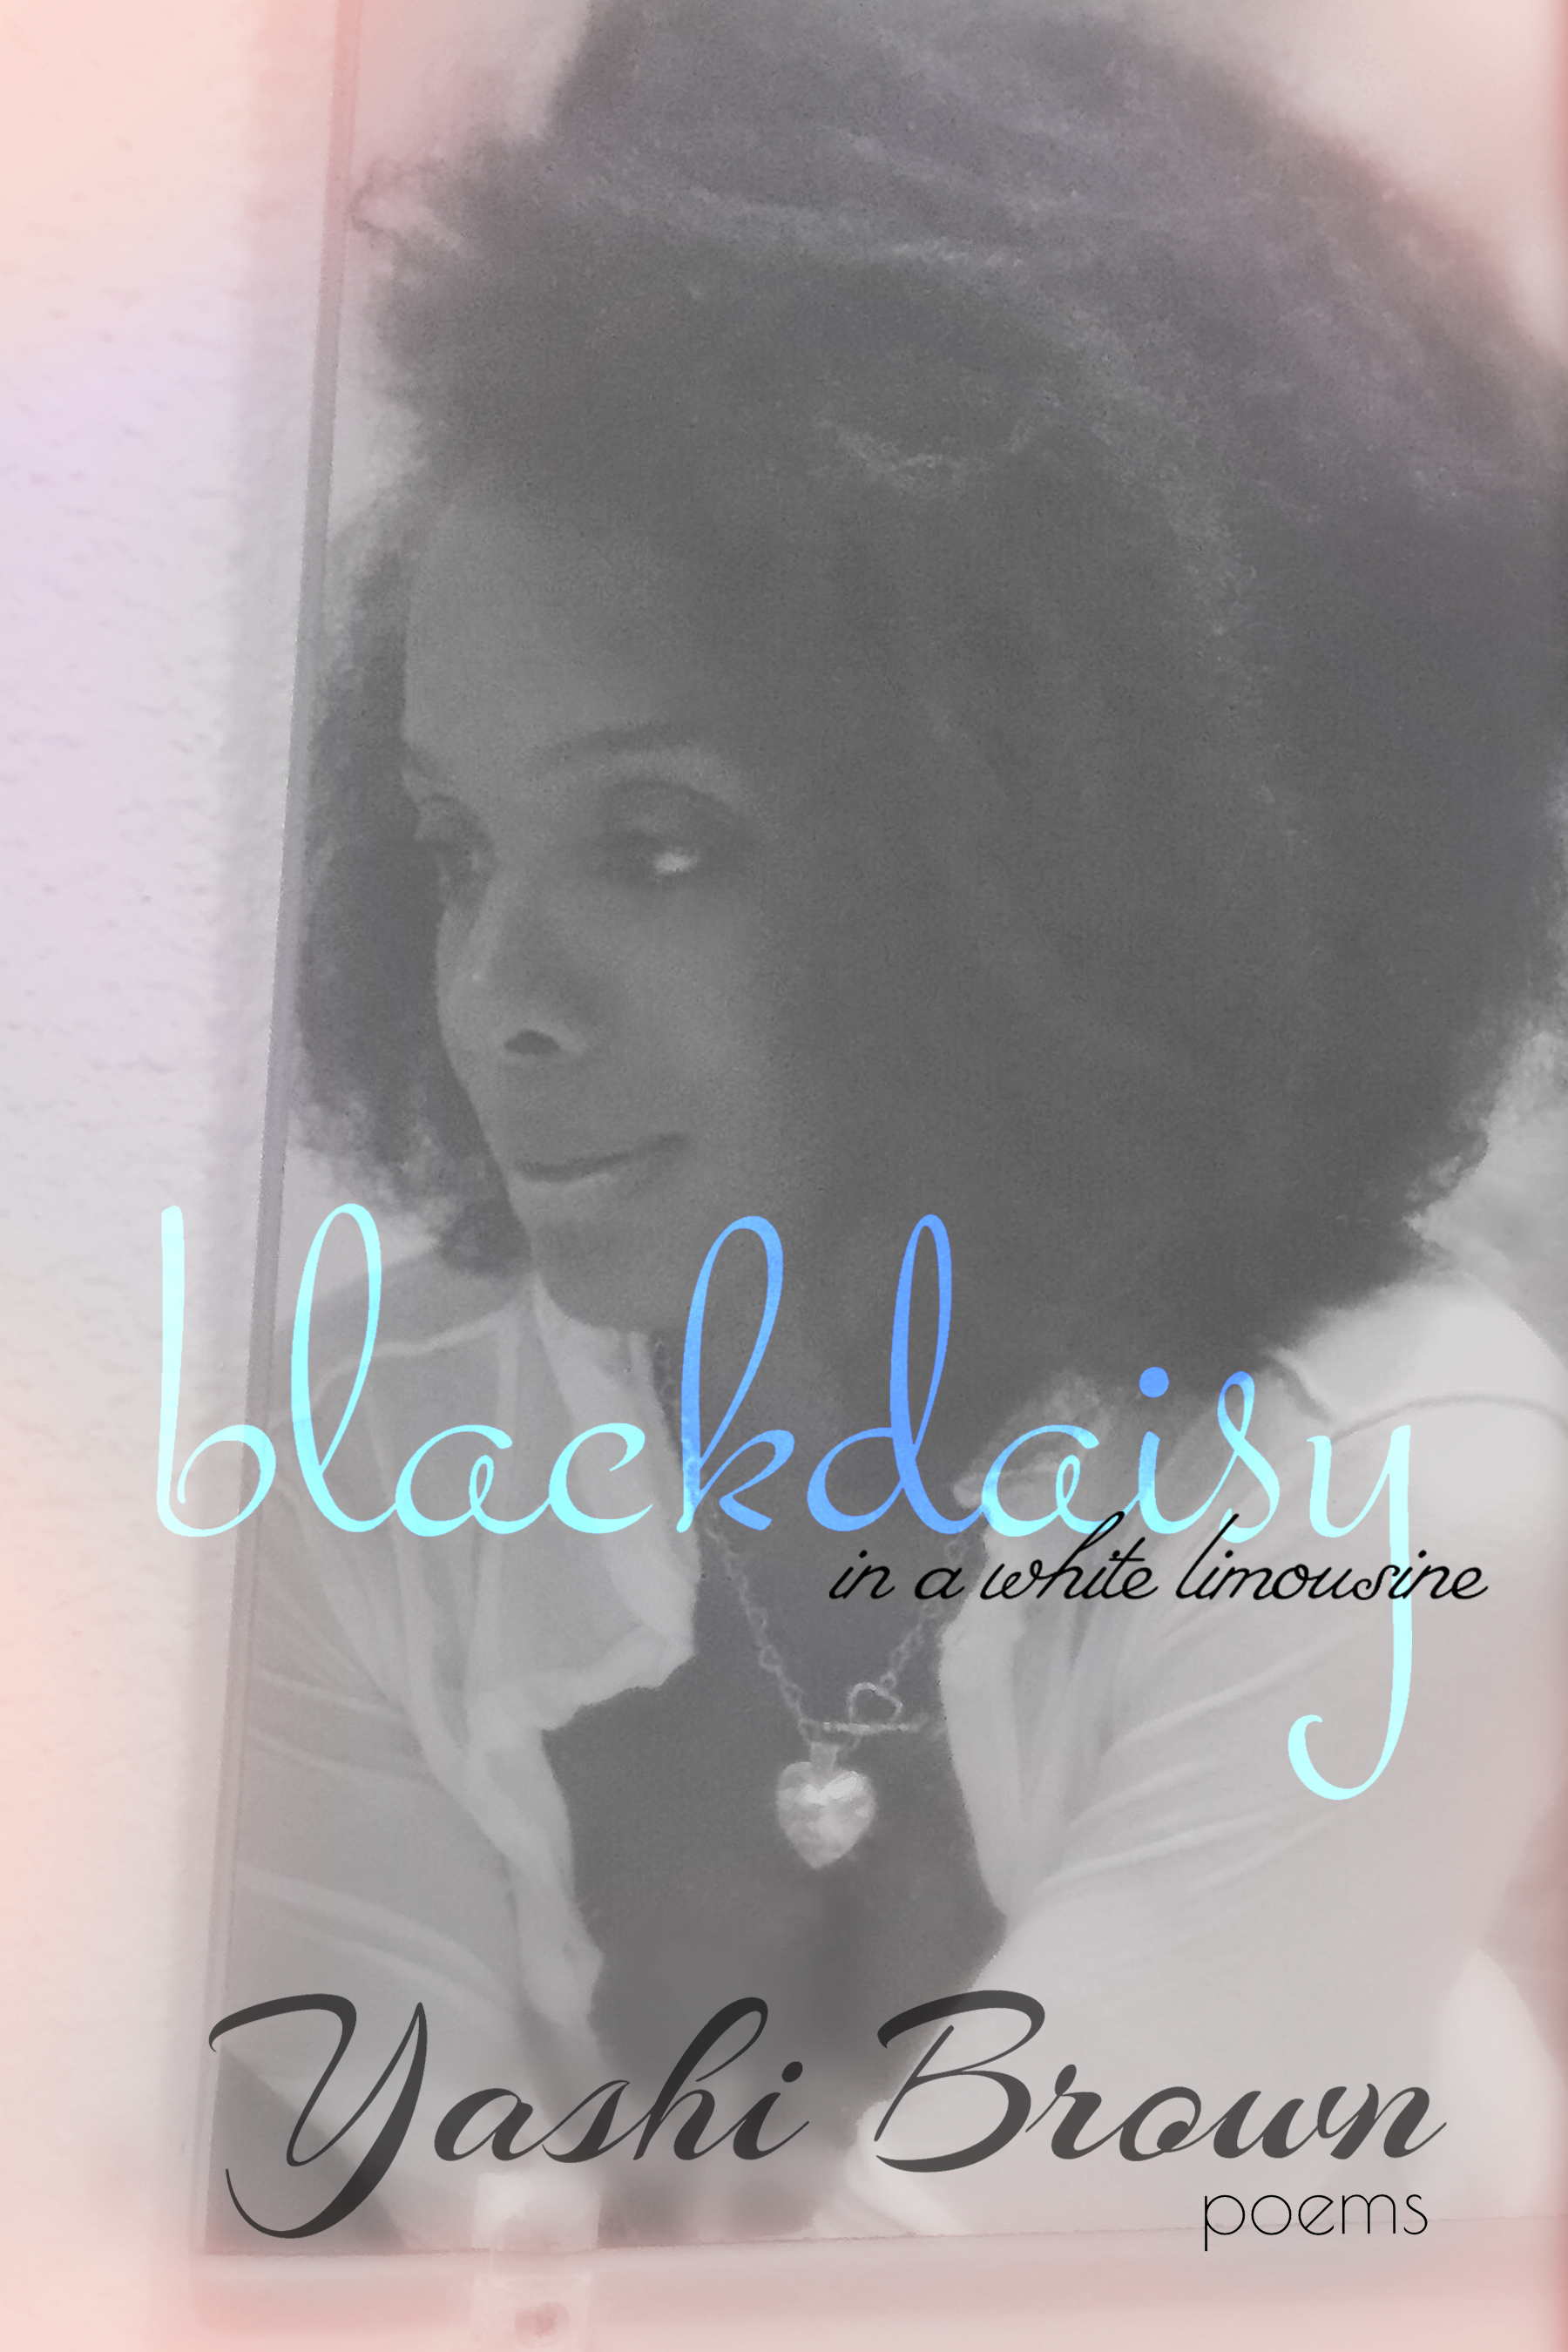 Yashi Brown's Book - Black Daisy: In A White Limousine